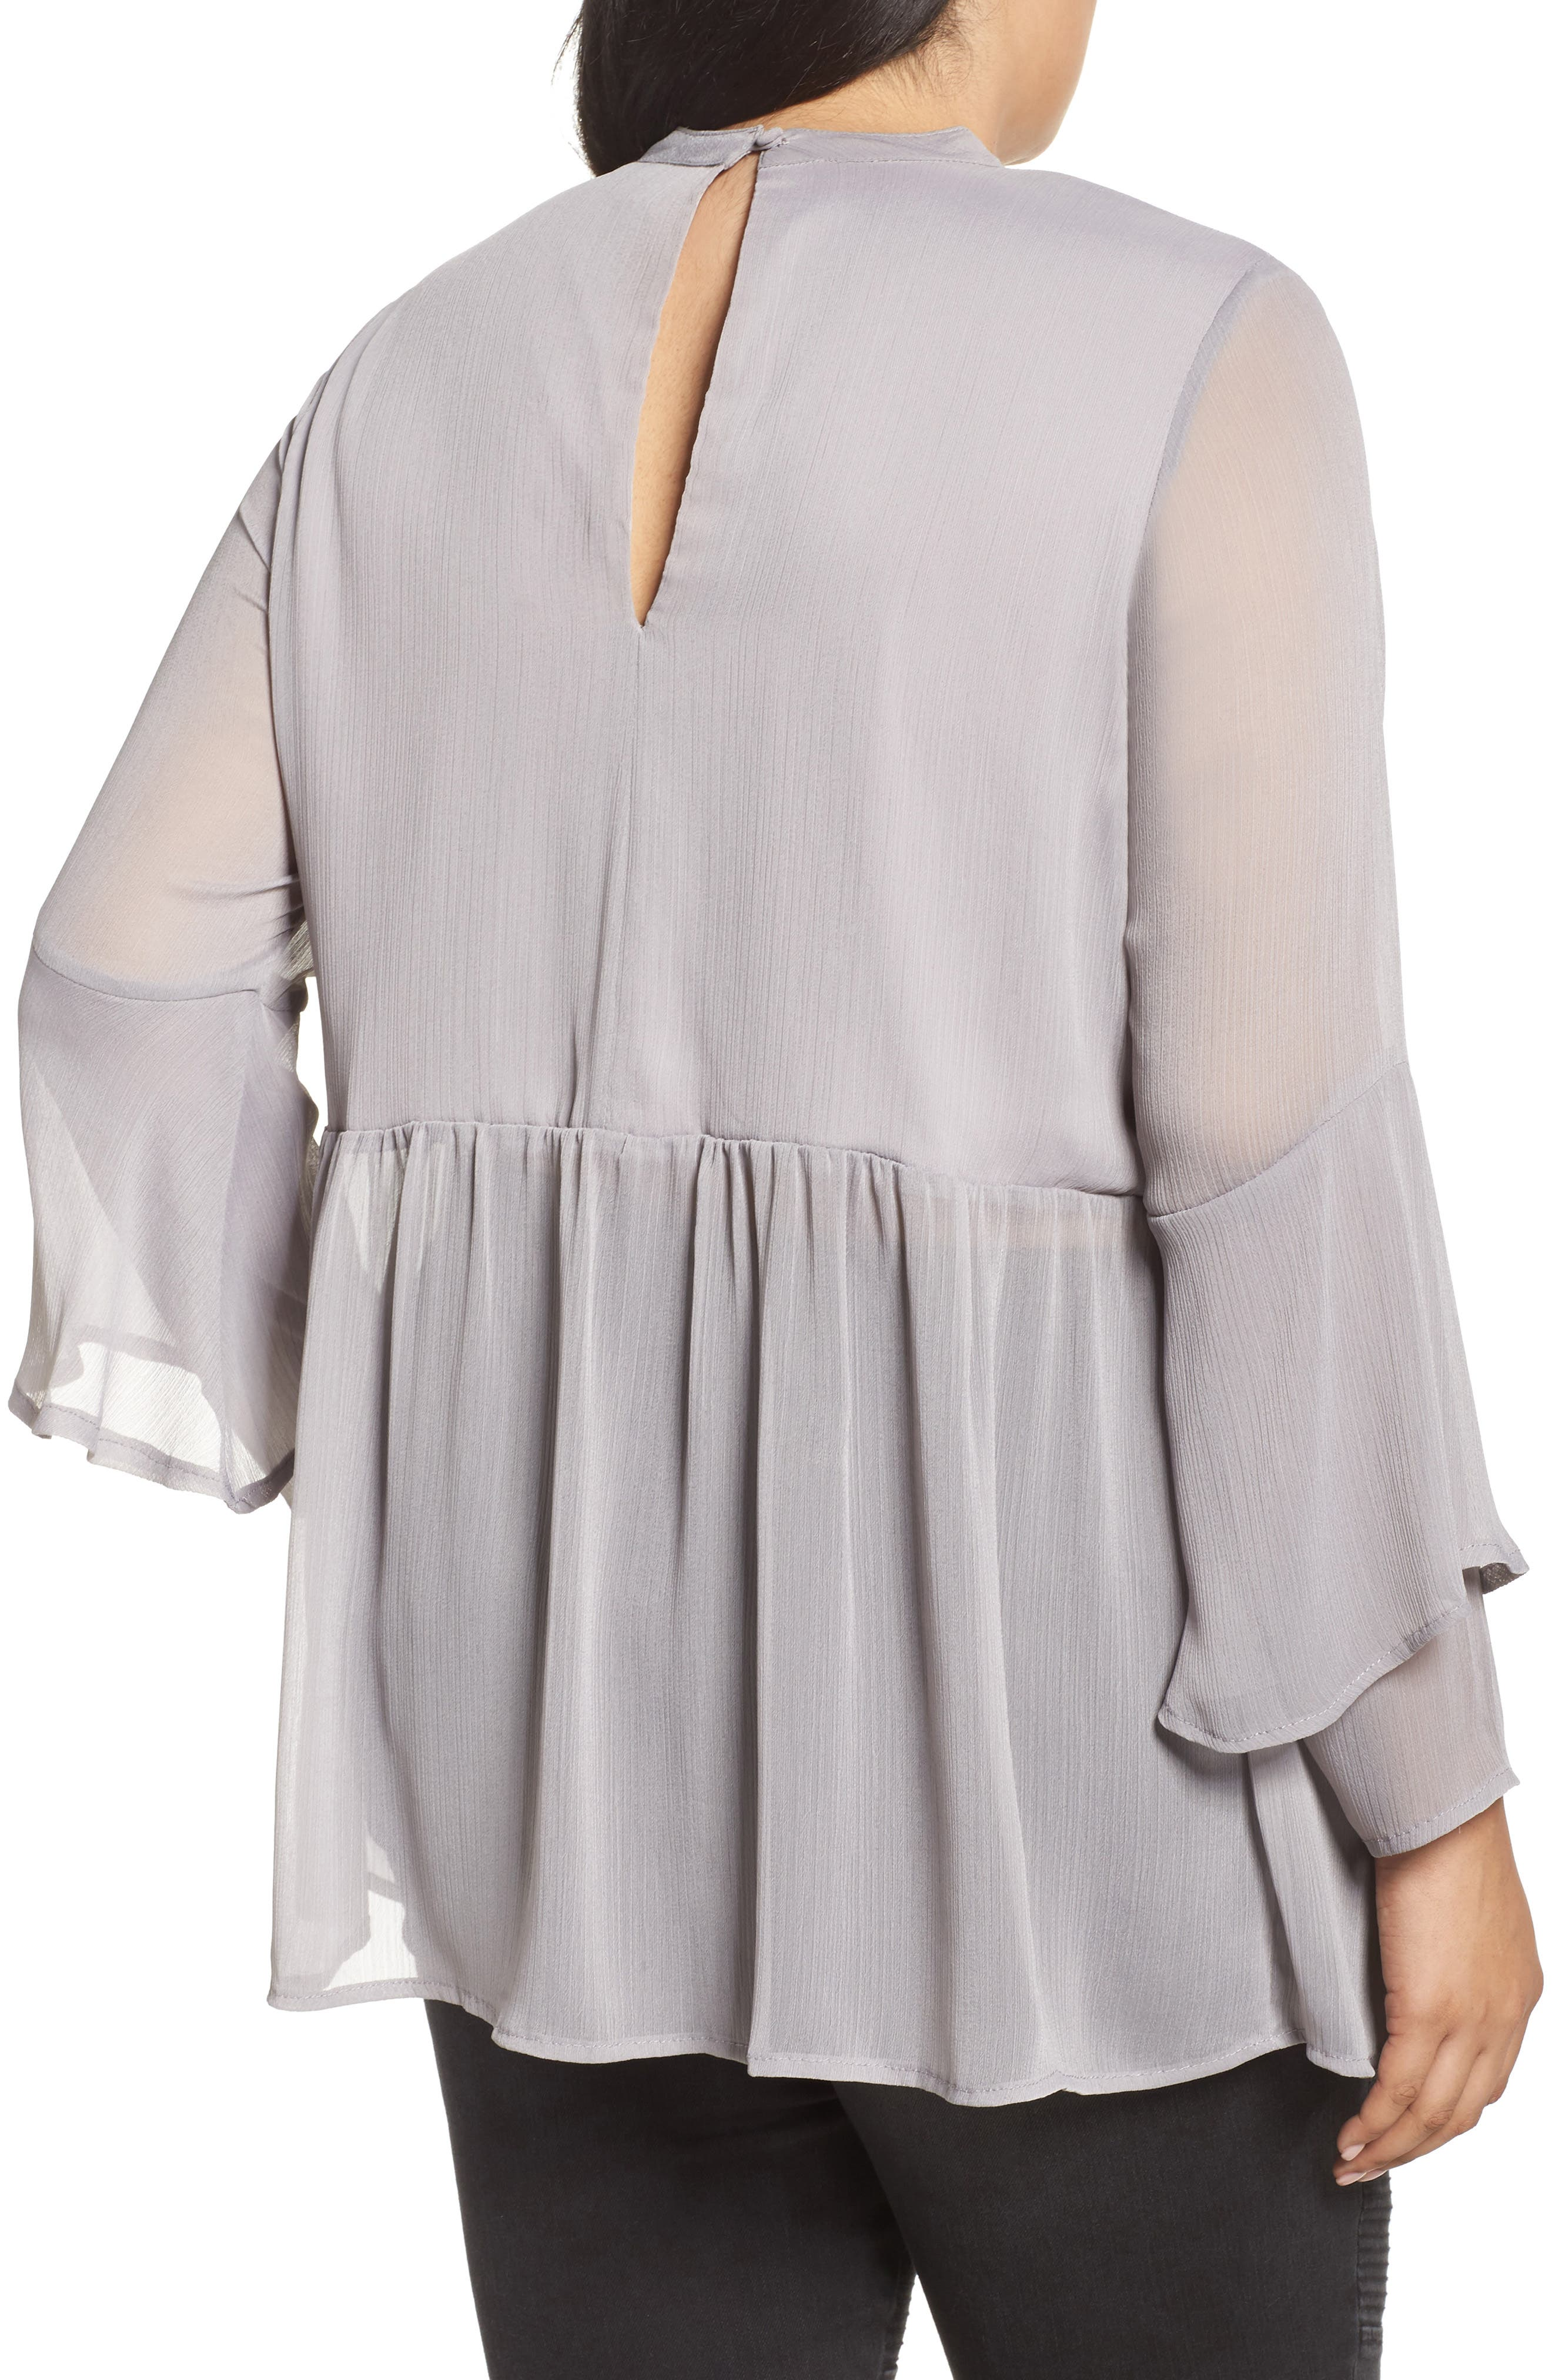 Crinkled Chiffon Top,                             Alternate thumbnail 2, color,